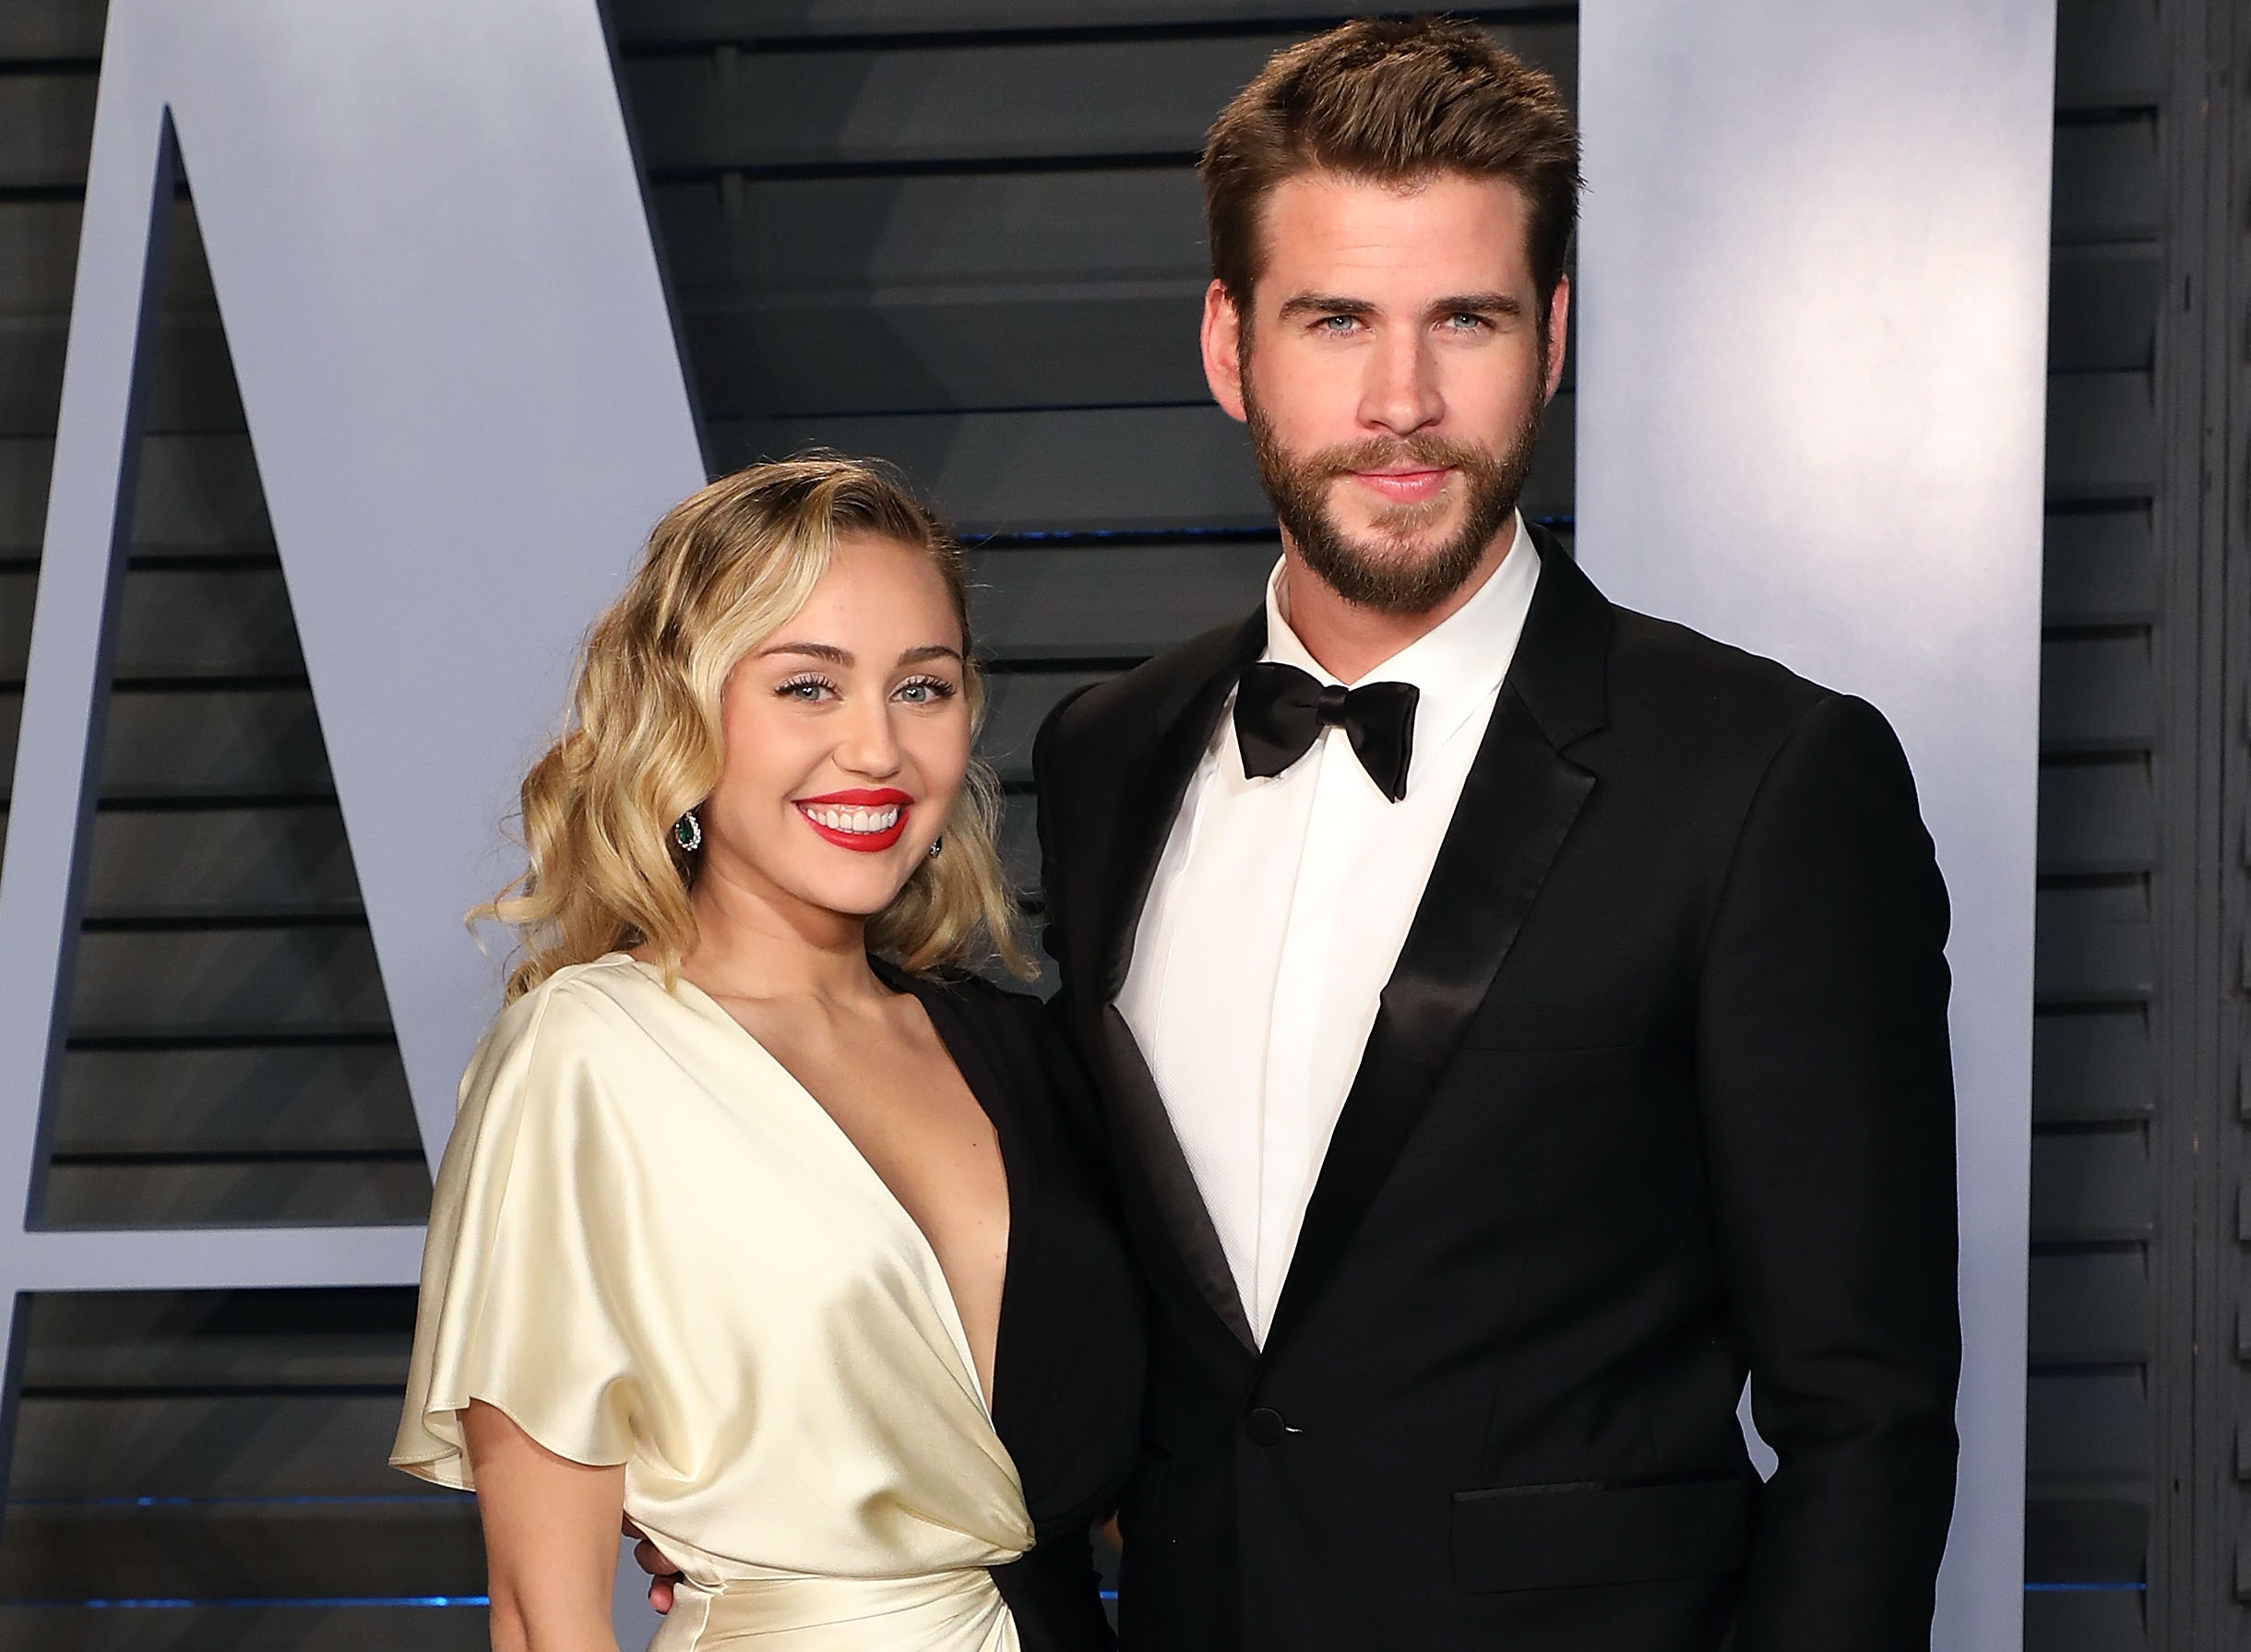 Miley Cyrus and Liam Hemsworth secretly marry